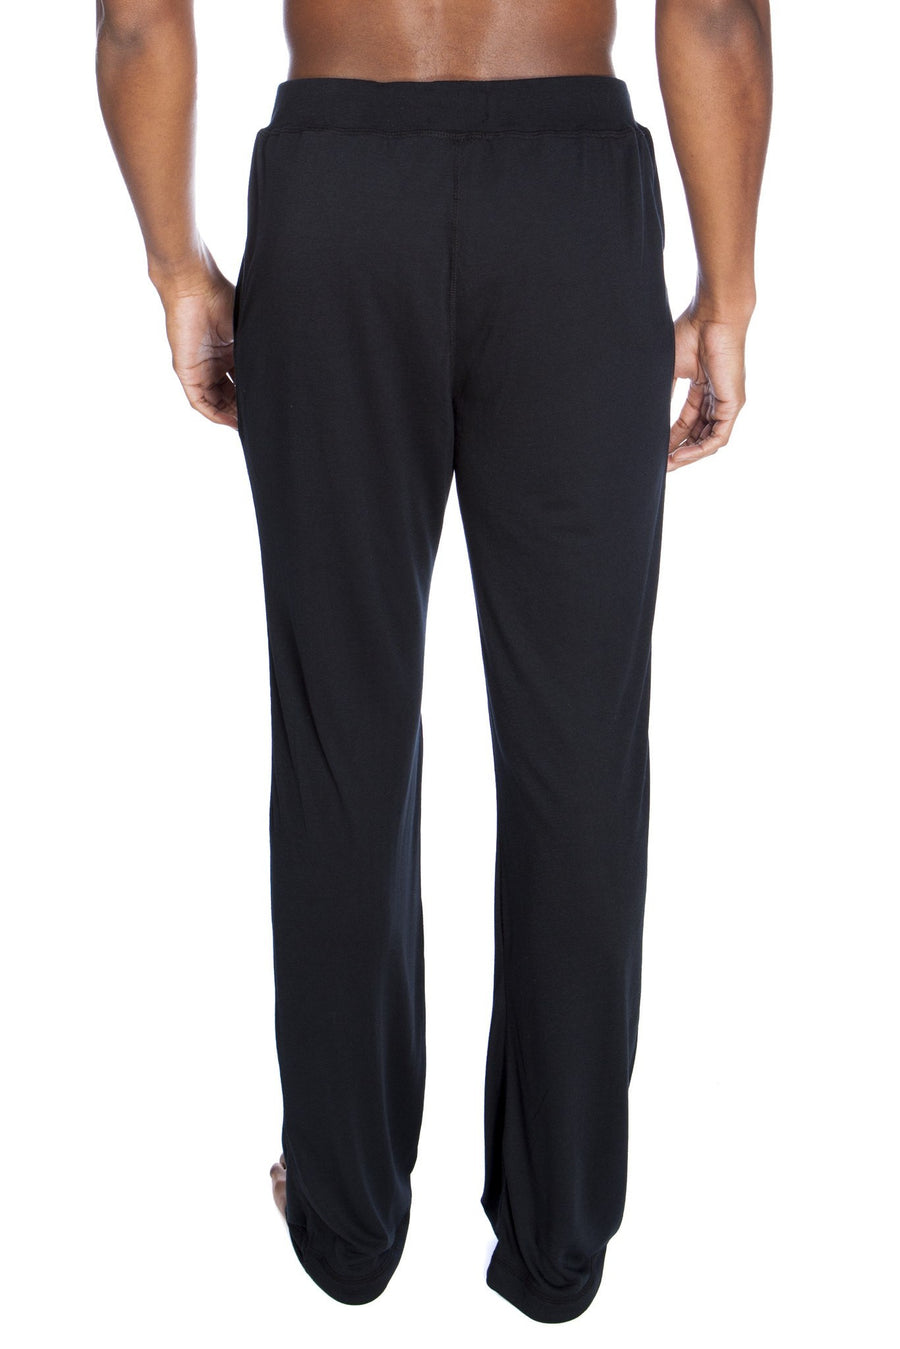 Super Soft Lounge Pant